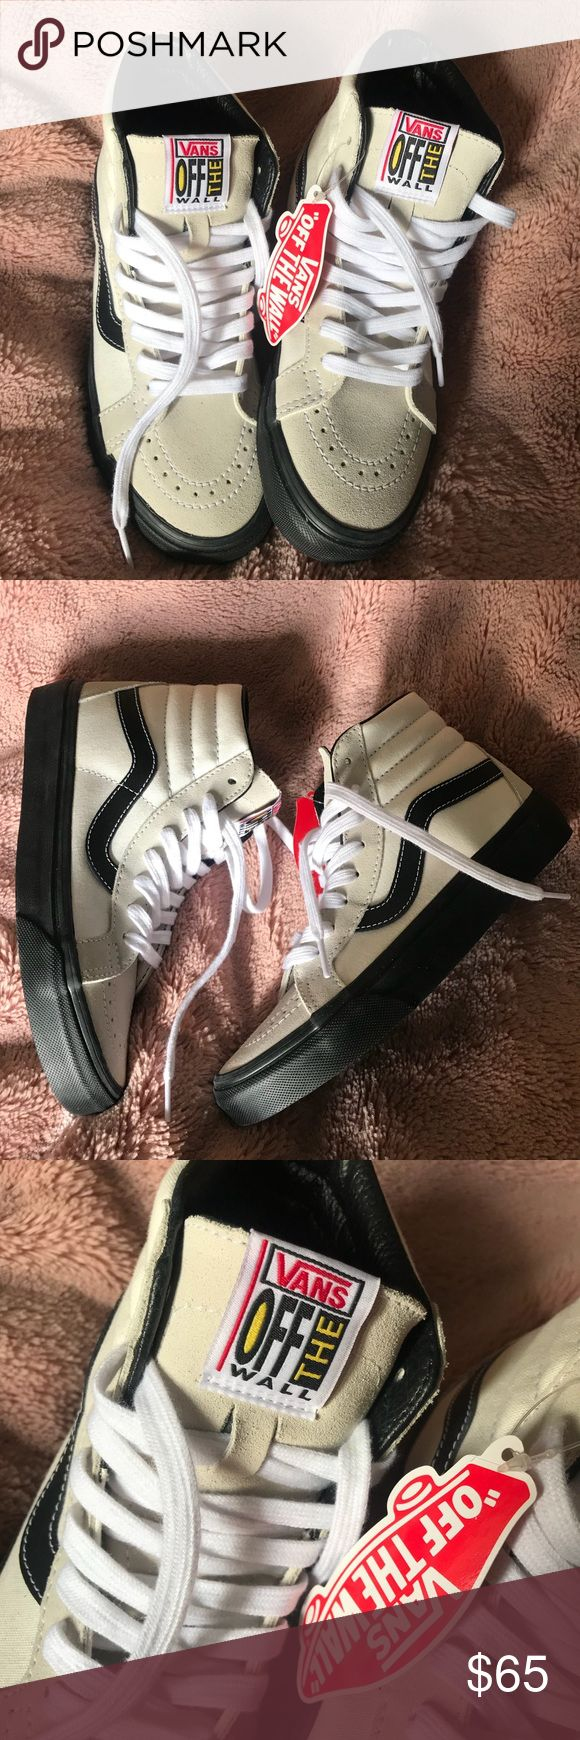 NEW RARE Sk8 Hi Vans Women's 6 Cream + Black UO NEW Sk8 Hi Vans Women's 6   Cream + Black   RARE UO Urban Outfitters Vans Off the Wall   brand new condition   final Sale   ships USPS with tracking # Vans Shoes Sneakers